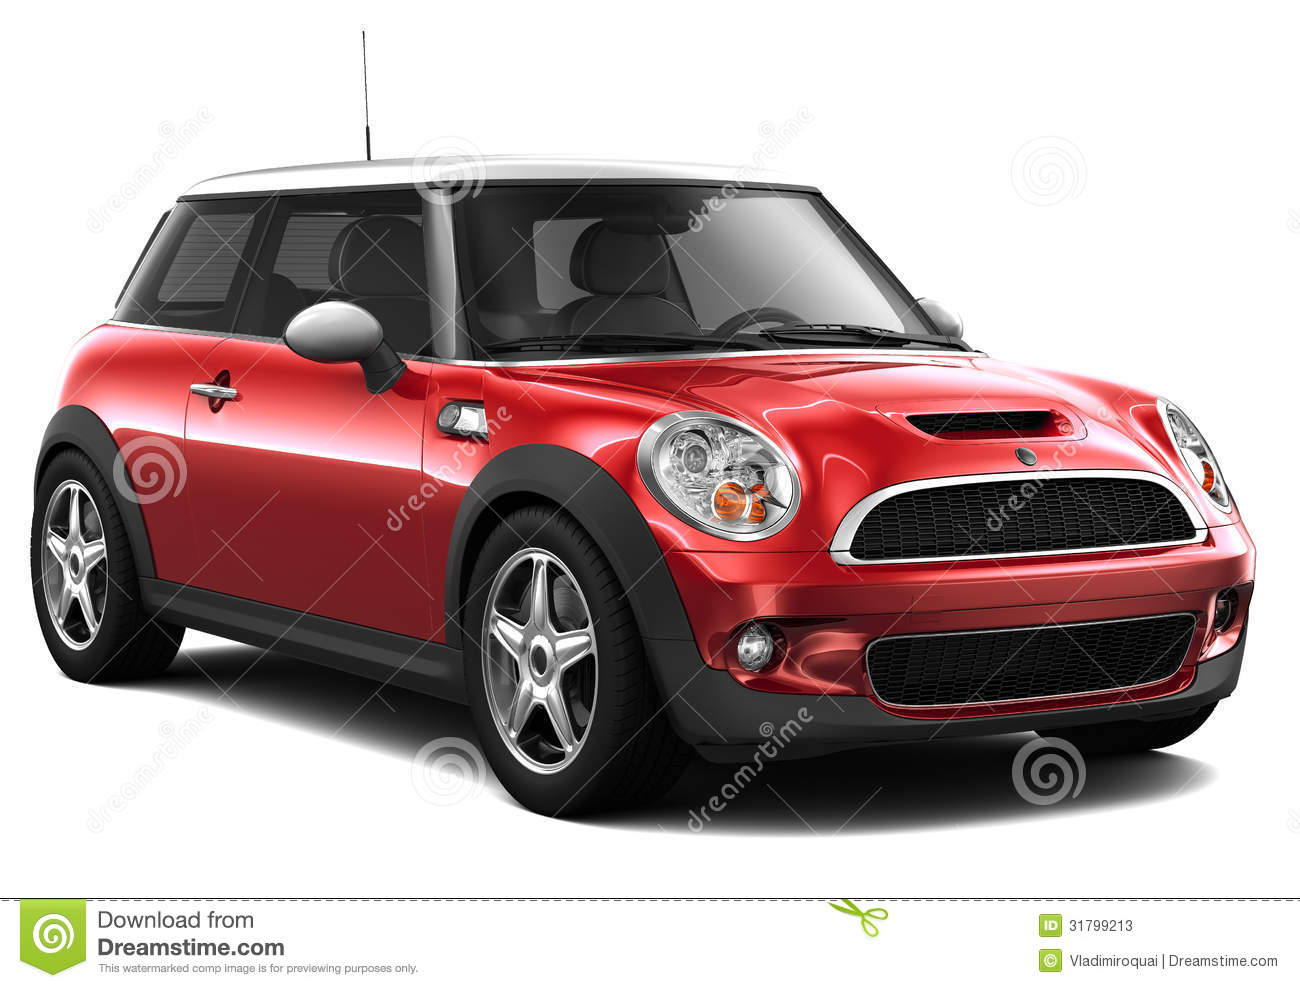 small car toy with Stock Photos Red Economy Car White Background Image31799213 on Turbocarreratshirt in addition Lego City 3177 Small Smart Car Vehicle And Driver Figure Toy New likewise Longest Living Dogs Real Life Years furthermore Category  pagnie Internationale des Wagons Lits  CIWL likewise Power Wheels Smart Car.